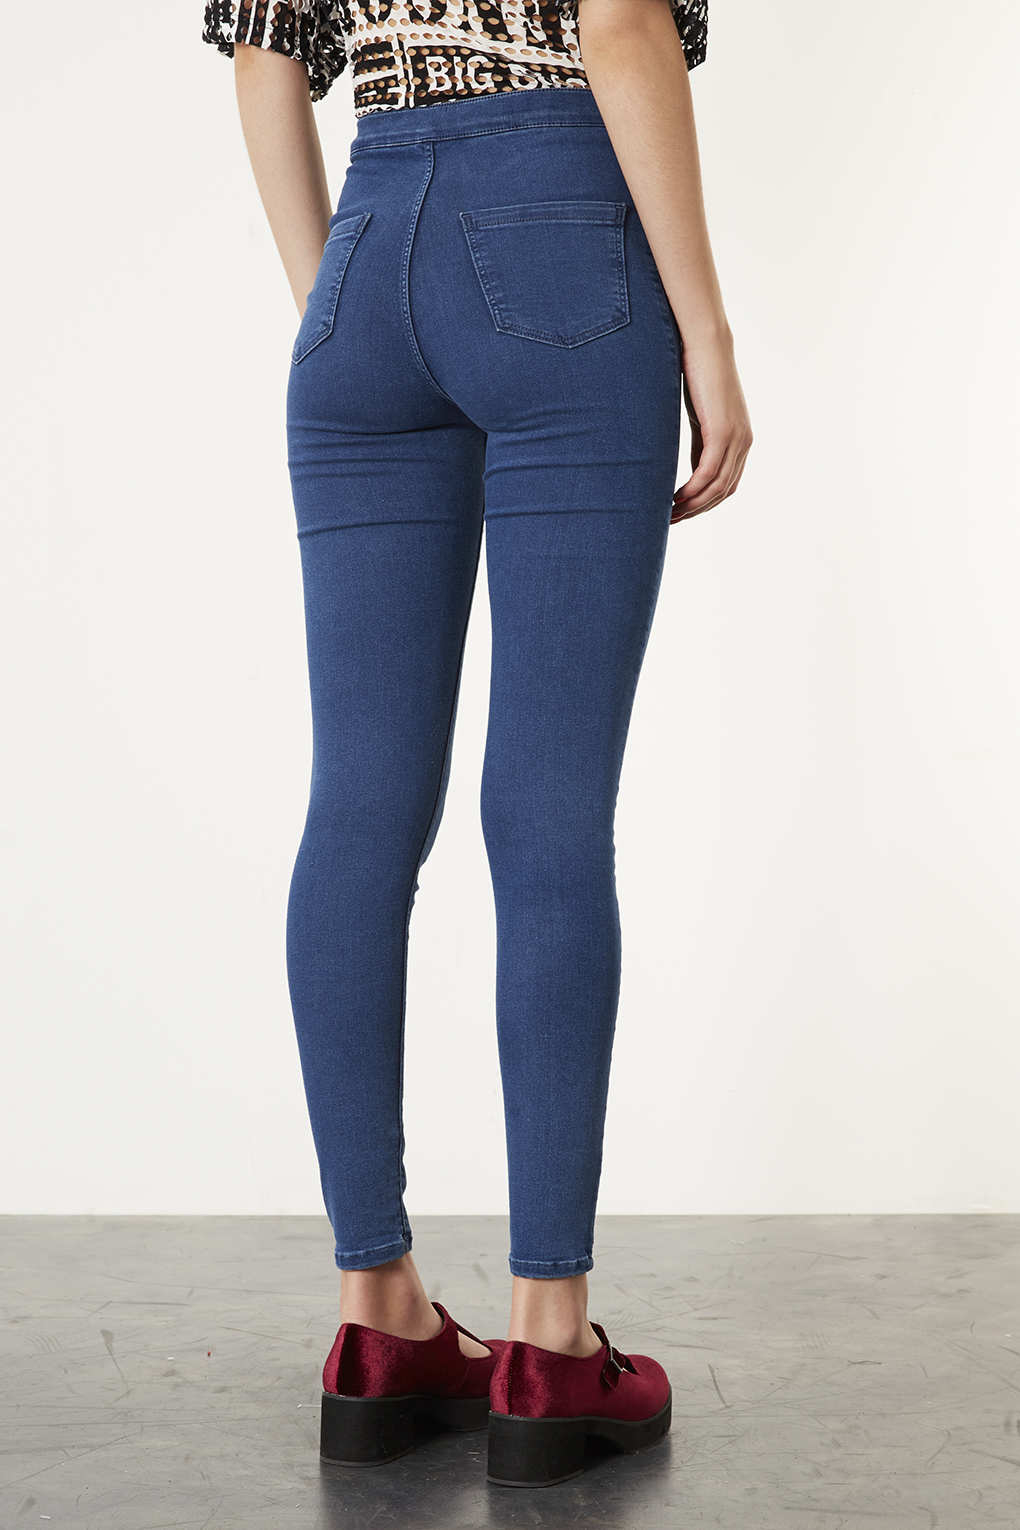 Get the best deals on joni high waisted jeans and save up to 70% off at Poshmark now! Whatever you're shopping for, we've got it.